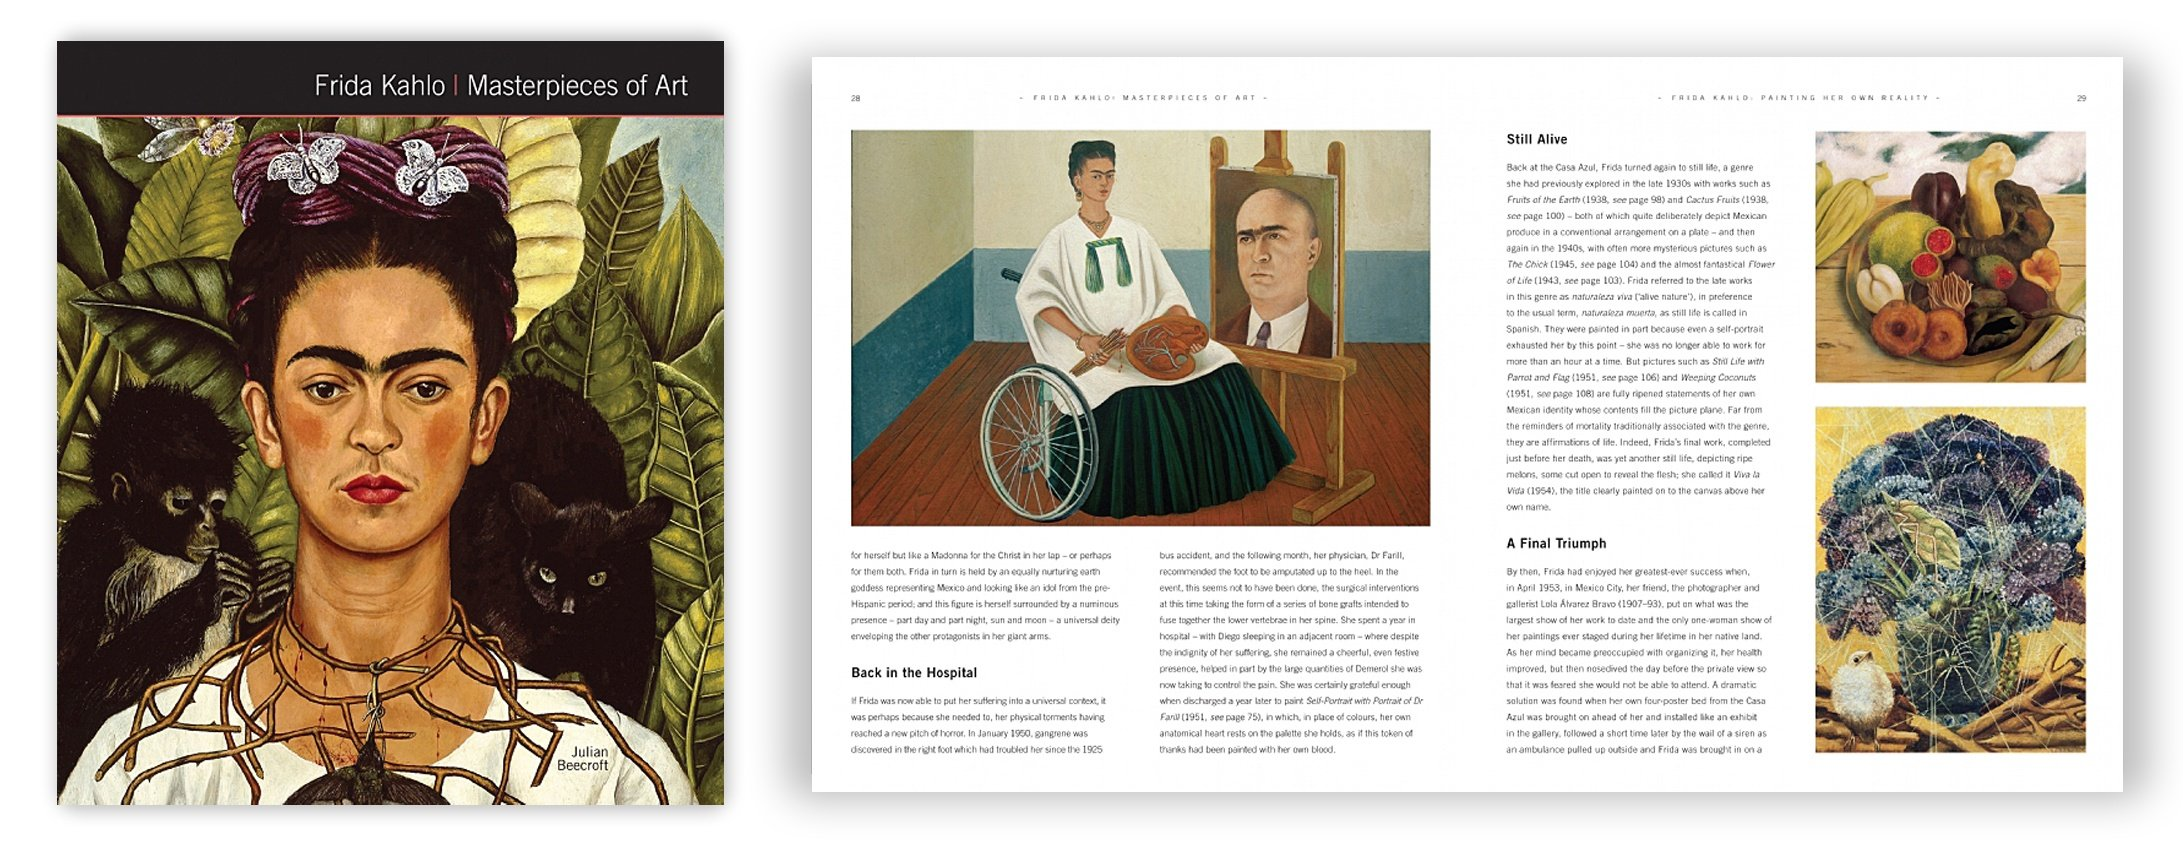 kahlo-masterpieces-art-spread